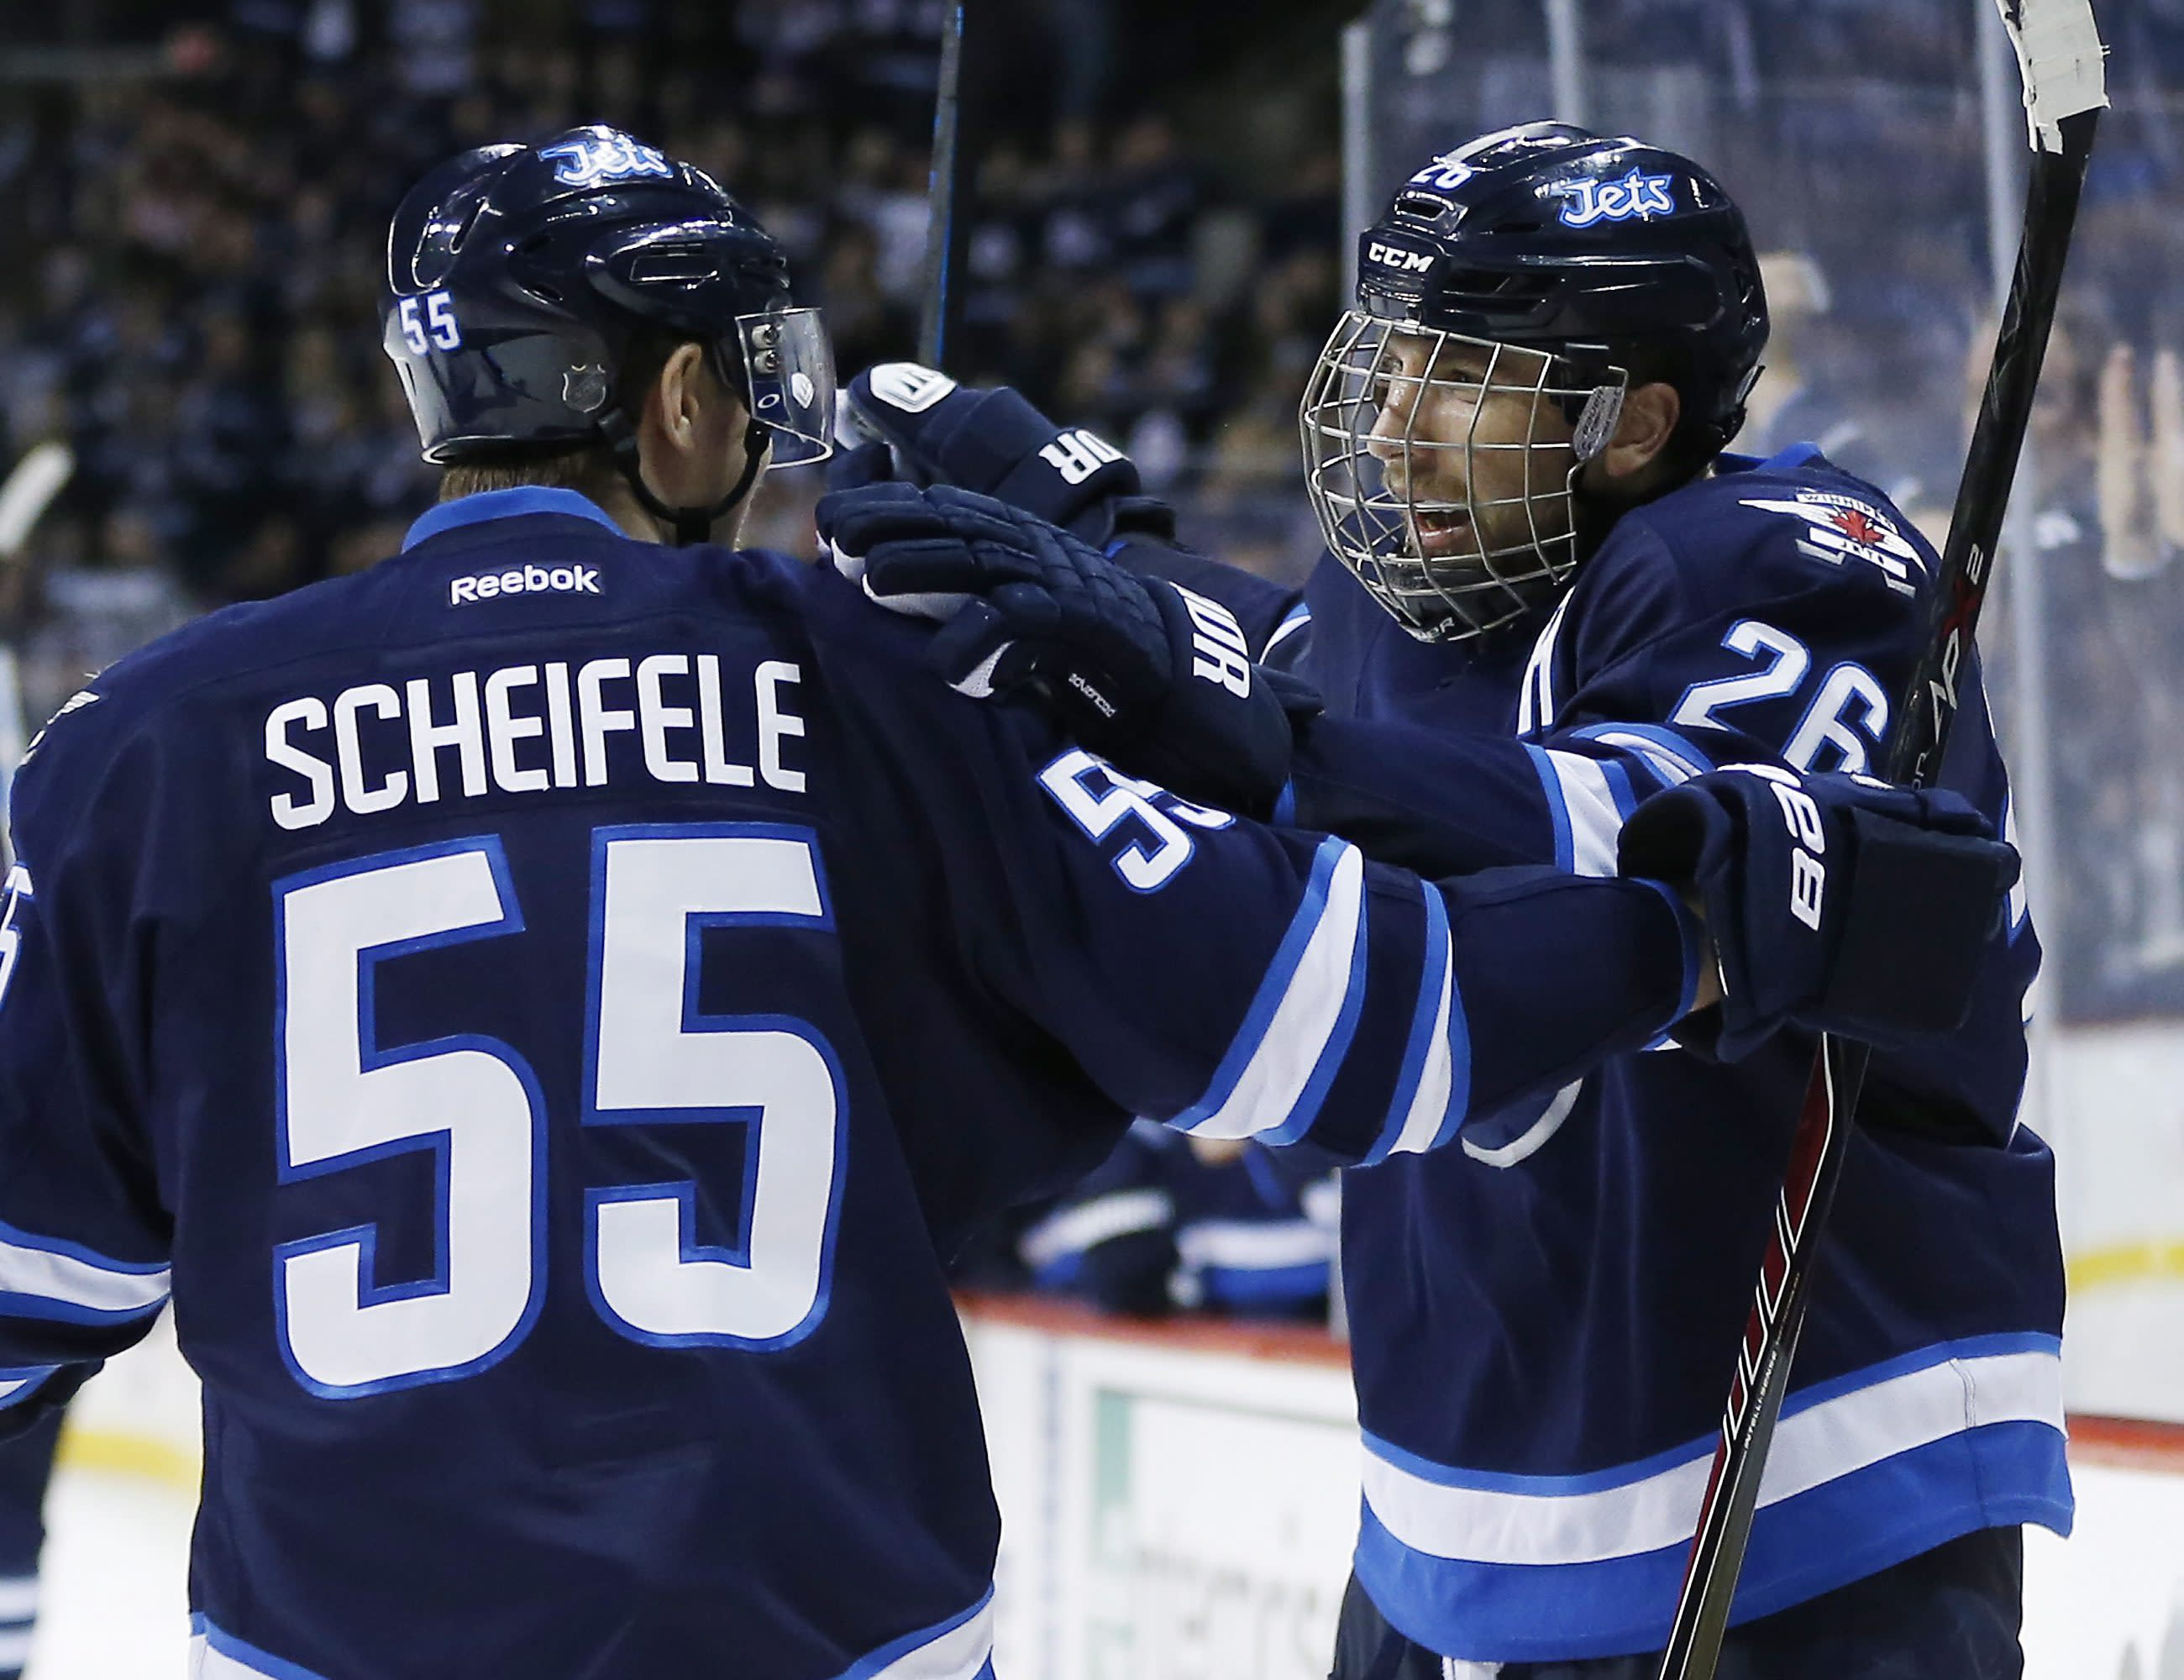 Pavelec stops 39 shots to lead Jets past Canadiens, 5-2